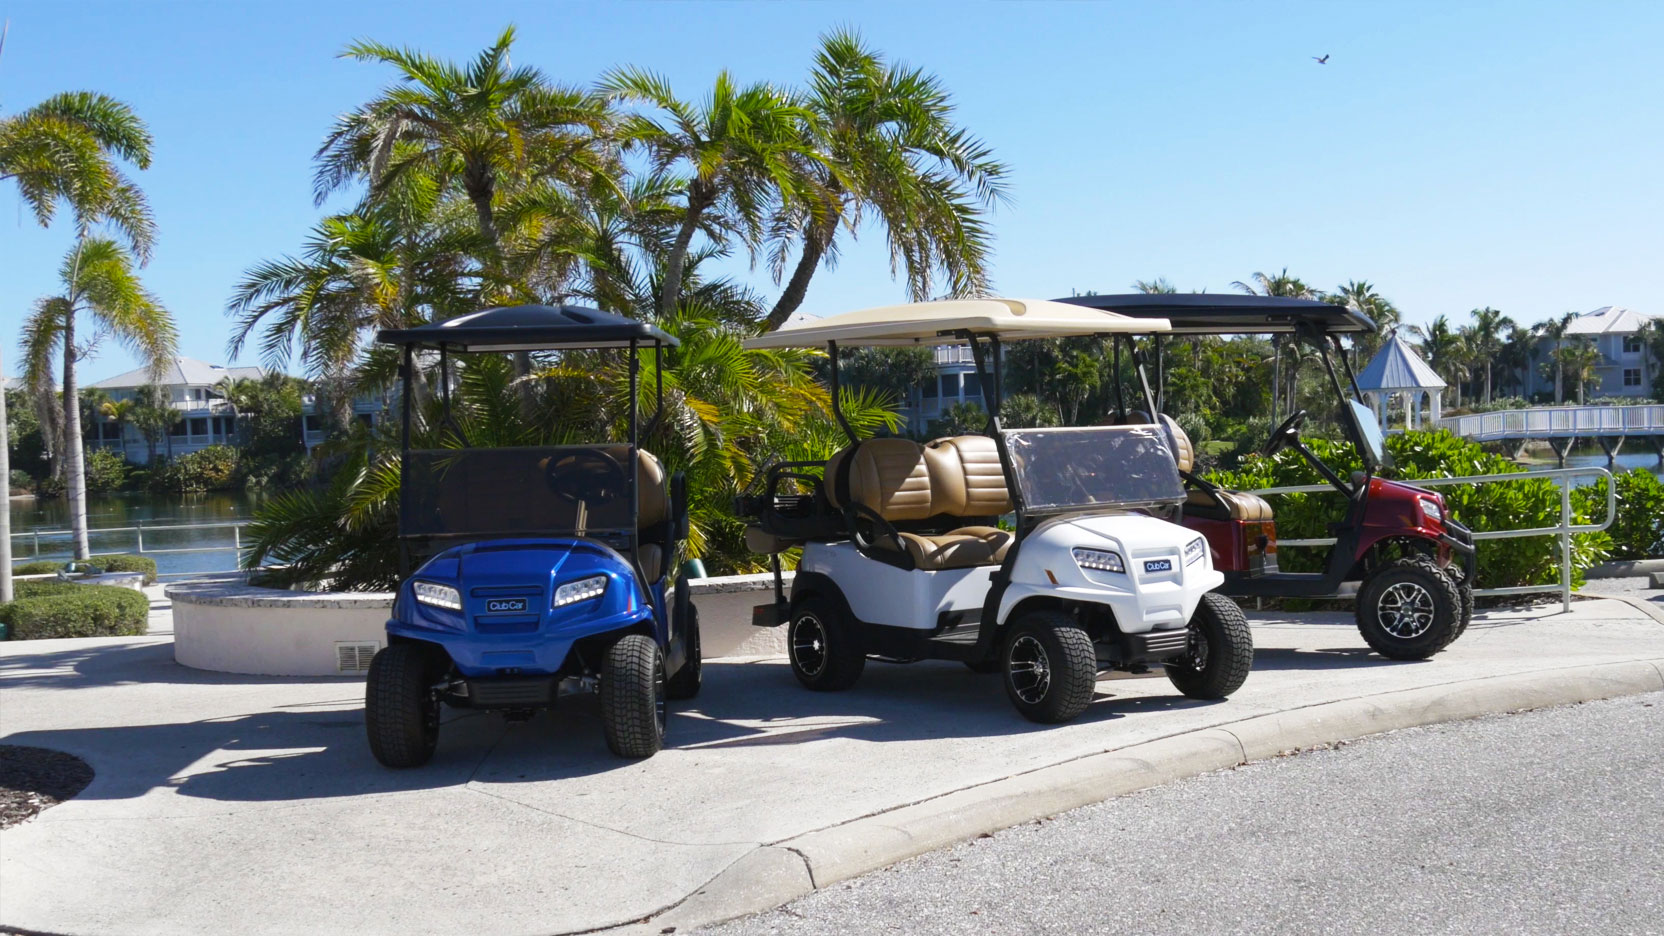 Three golf carts on sidewalk image